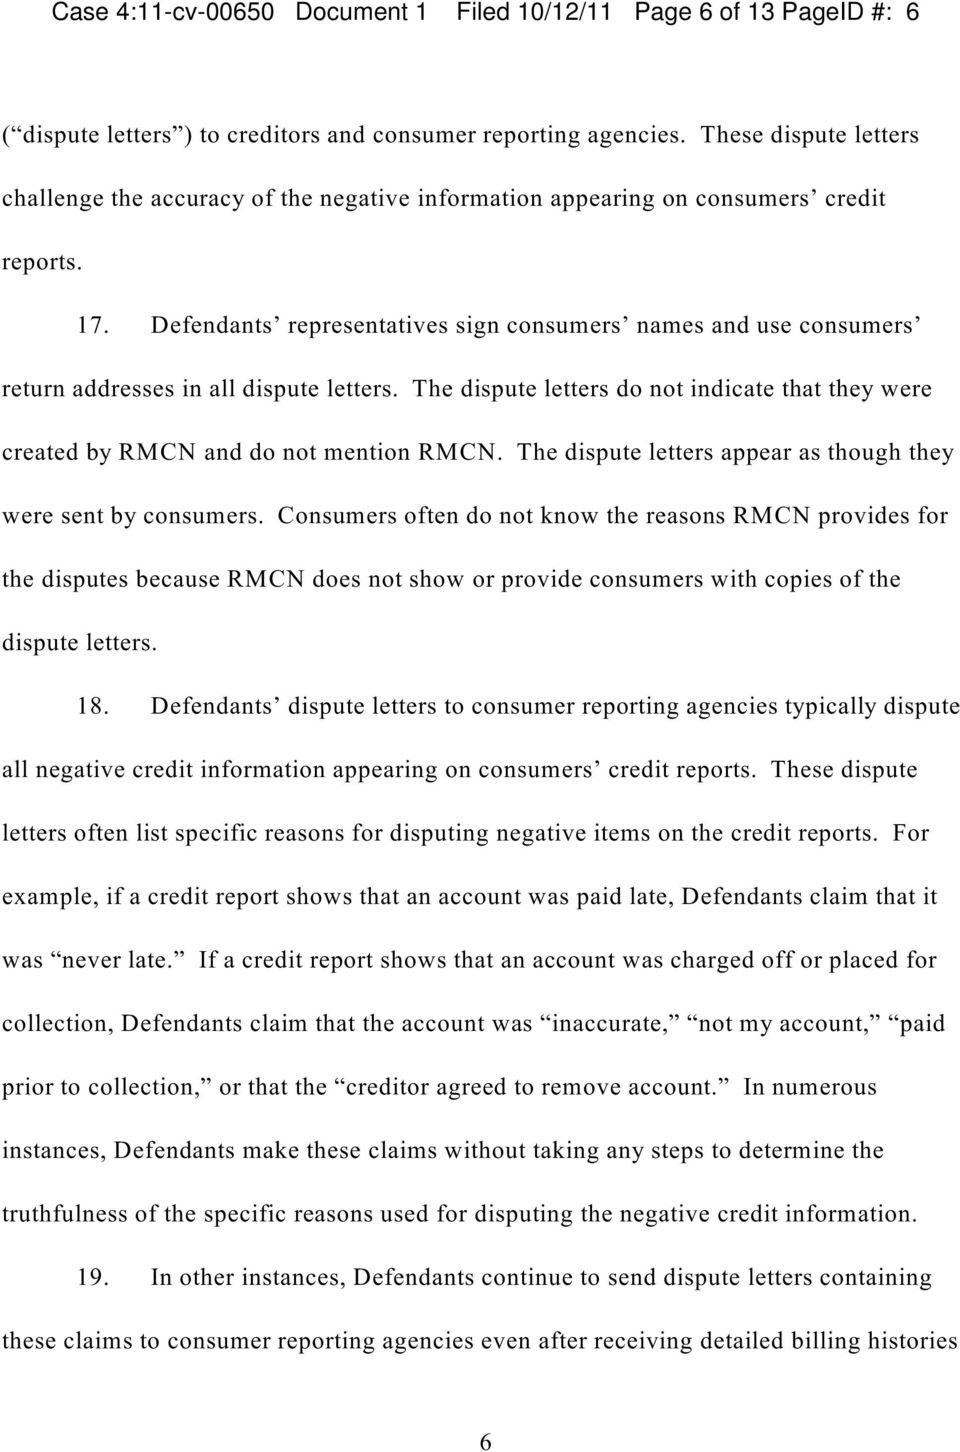 Defendants representatives sign consumers names and use consumers return addresses in all dispute letters. The dispute letters do not indicate that they were created by RMCN and do not mention RMCN.